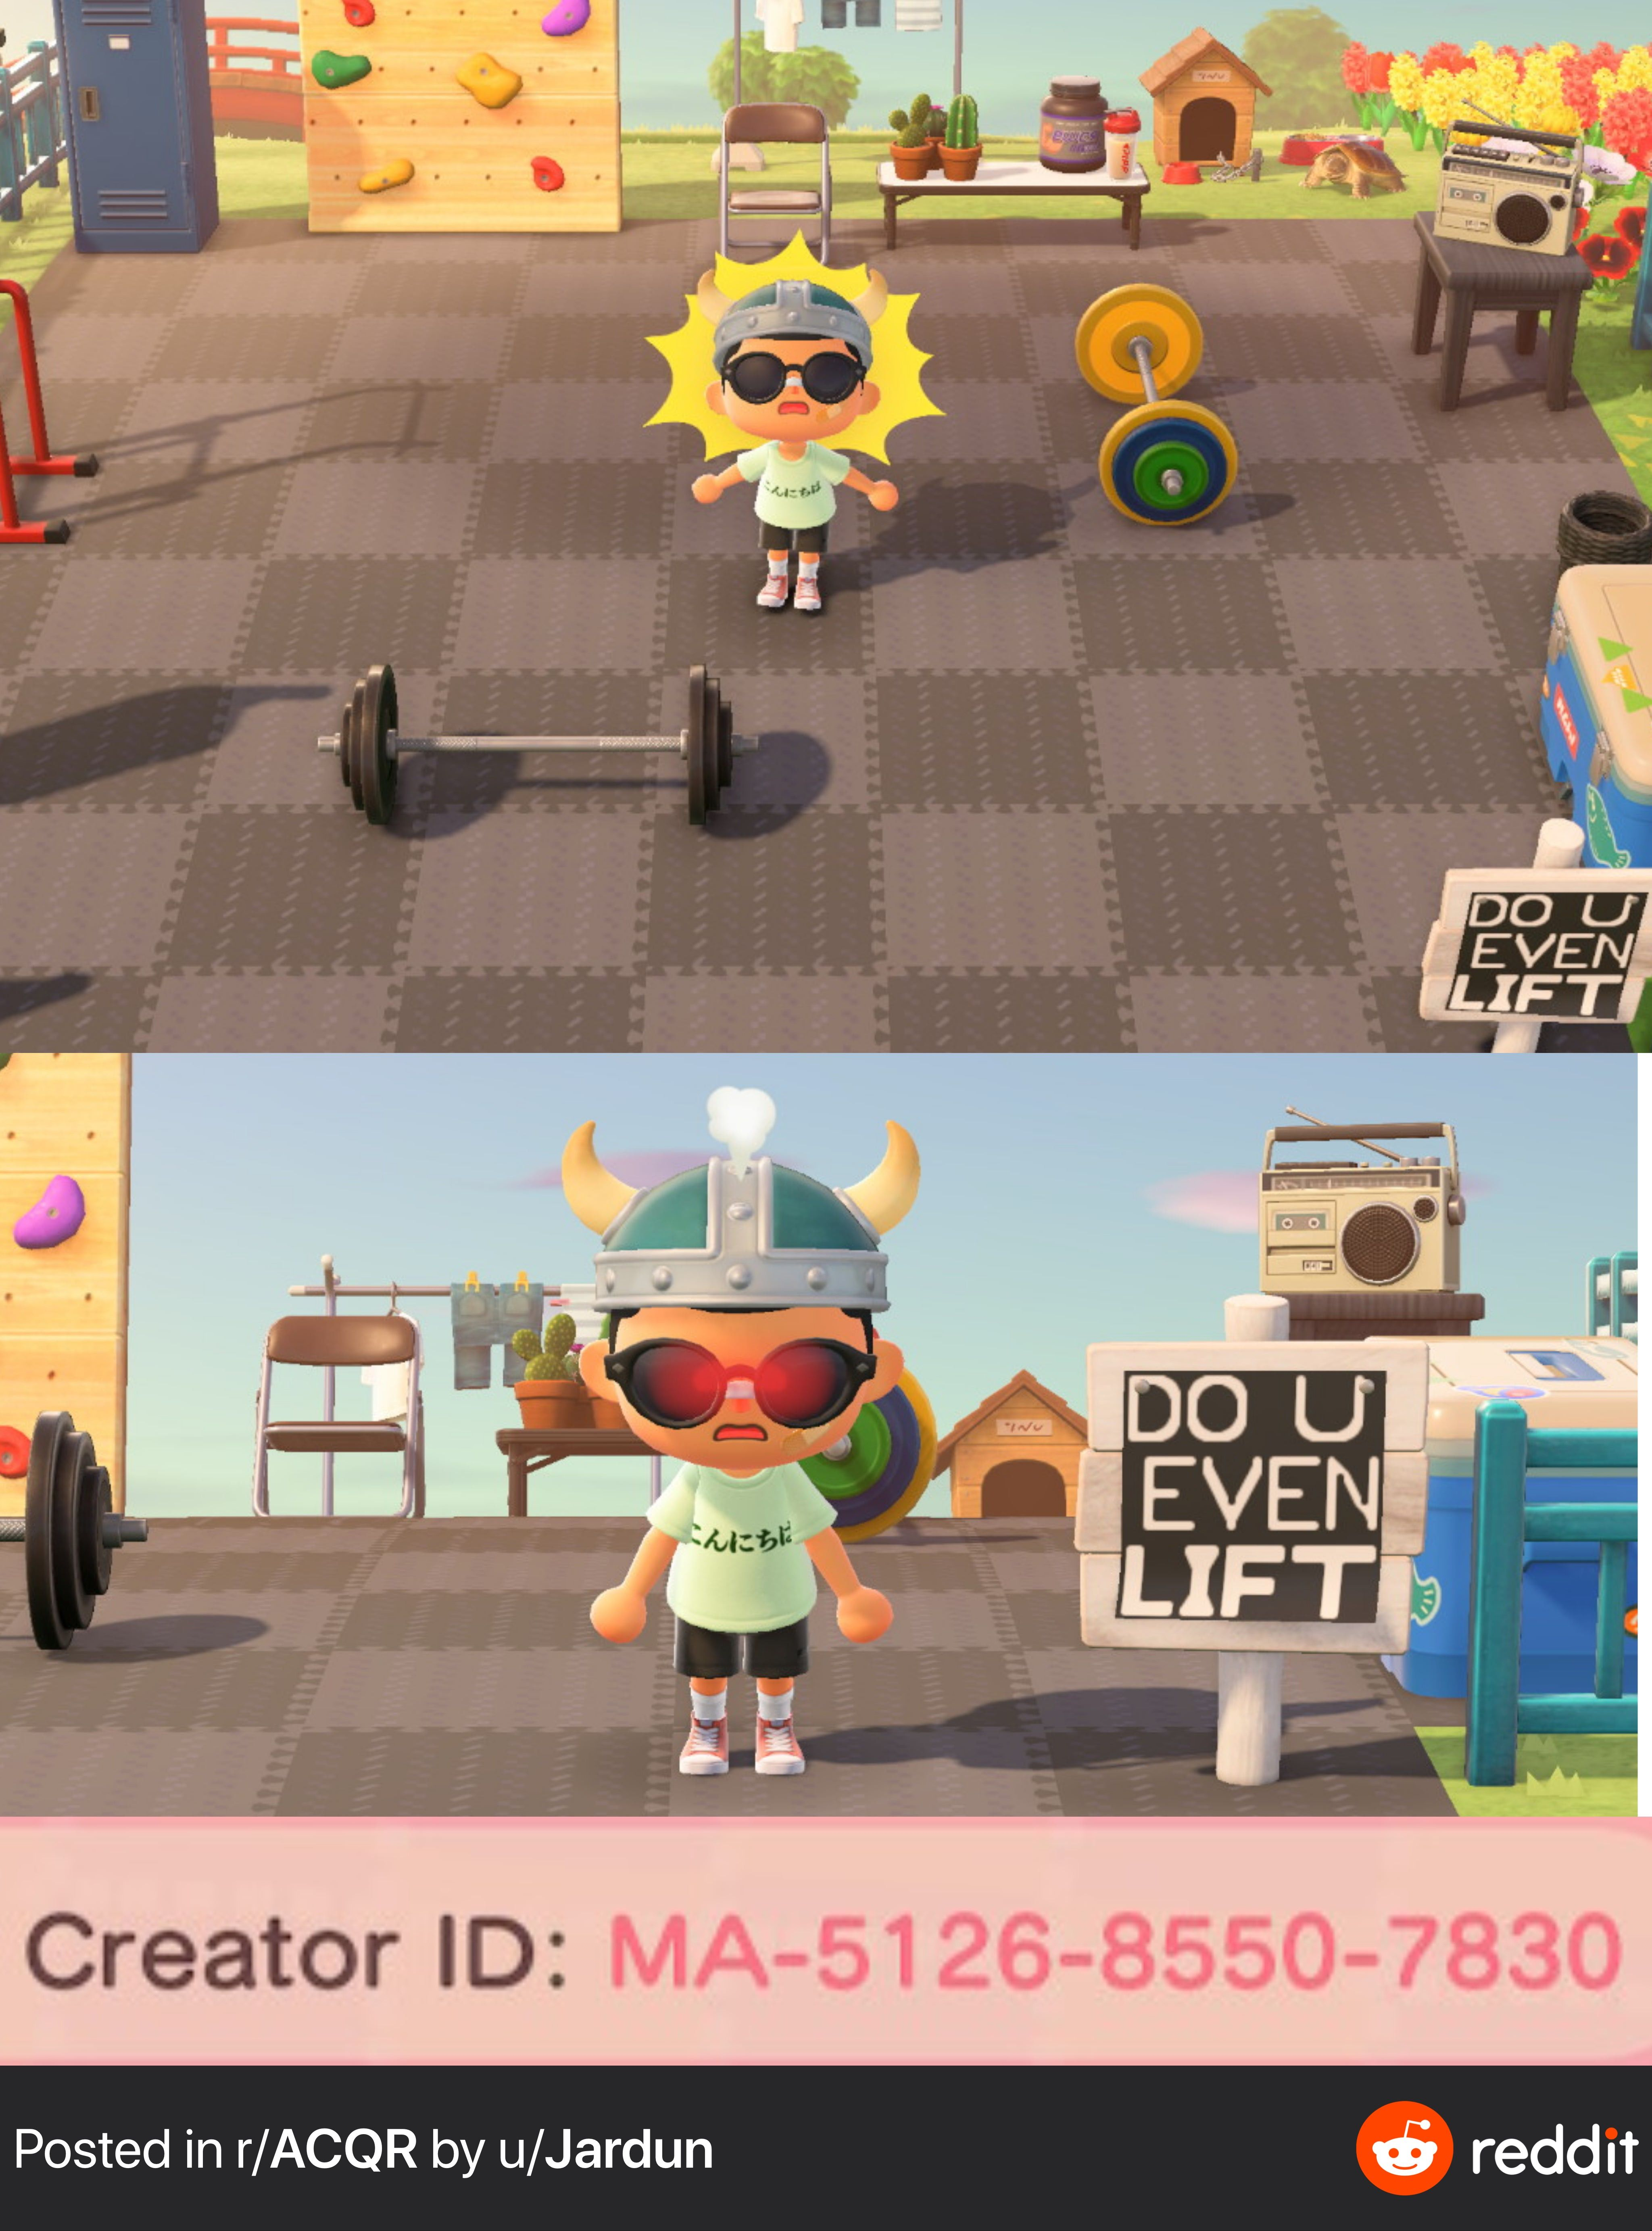 Pin By Sarah Bess On Acnh In 2020 Animal Crossing Game New Animal Crossing Animal Crossing Pc